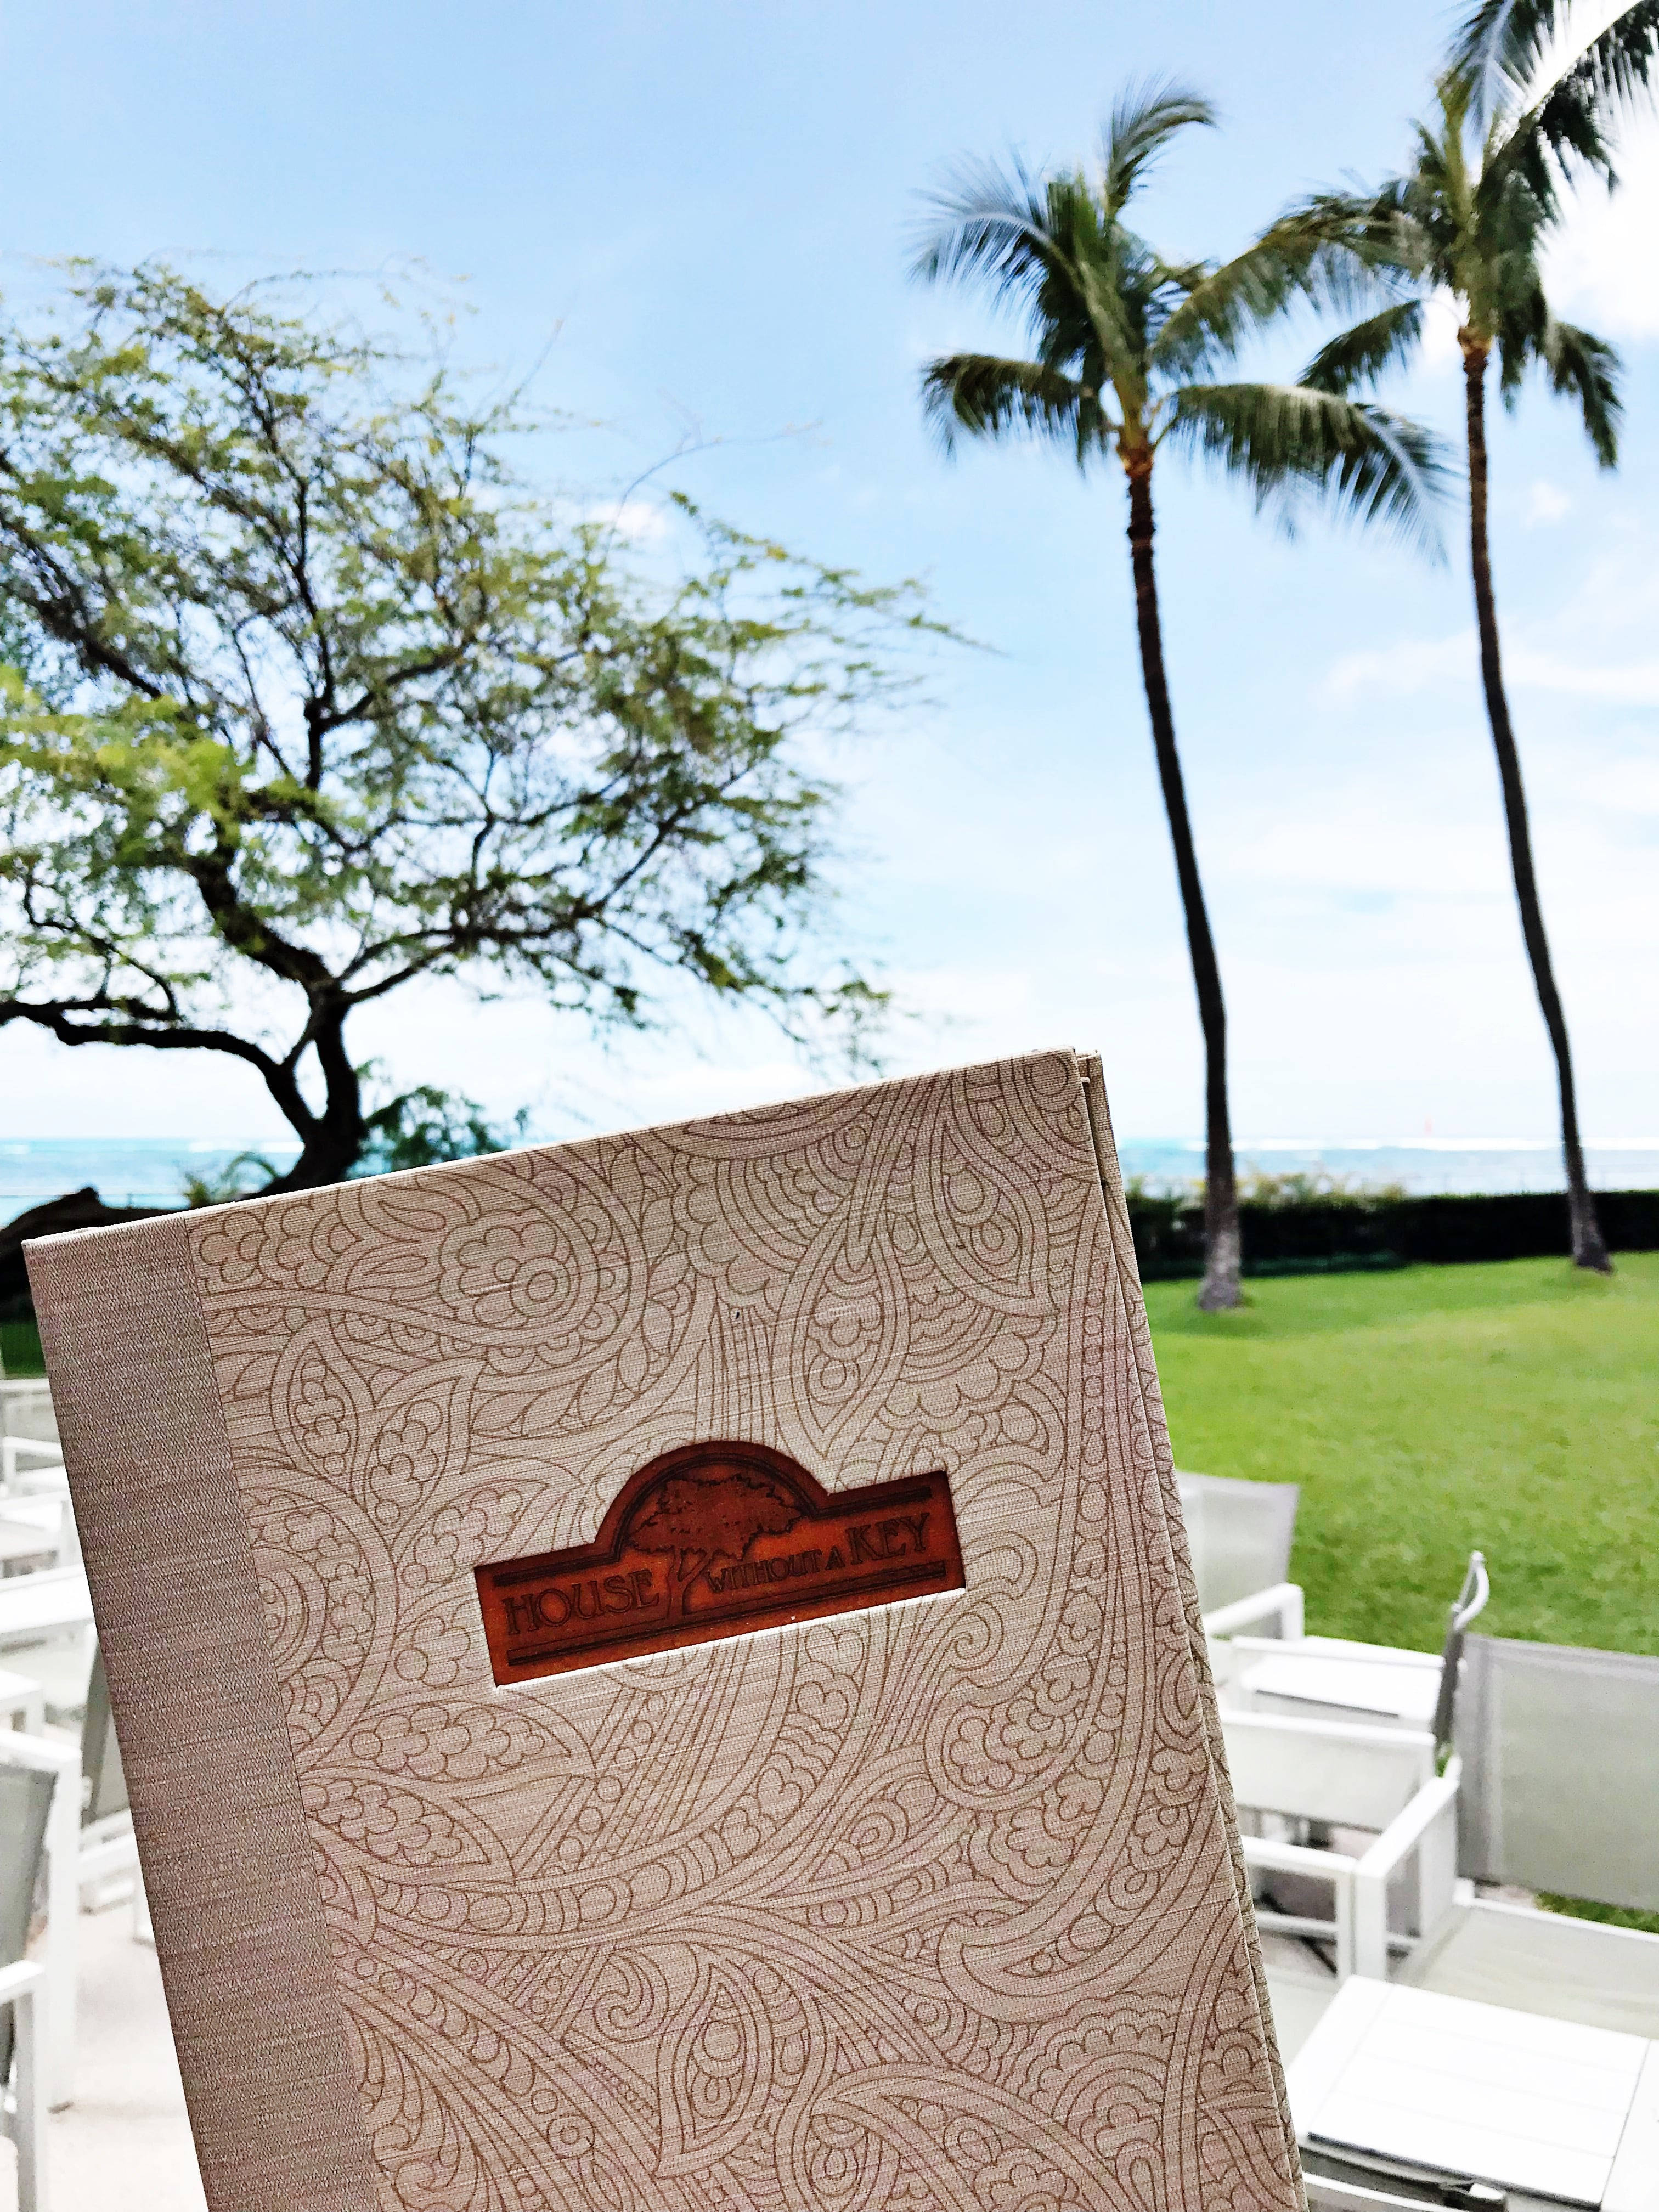 House Without A Key restaurant menu at Halekulani Hotel in Waikiki, holding up menu with palm trees in the background